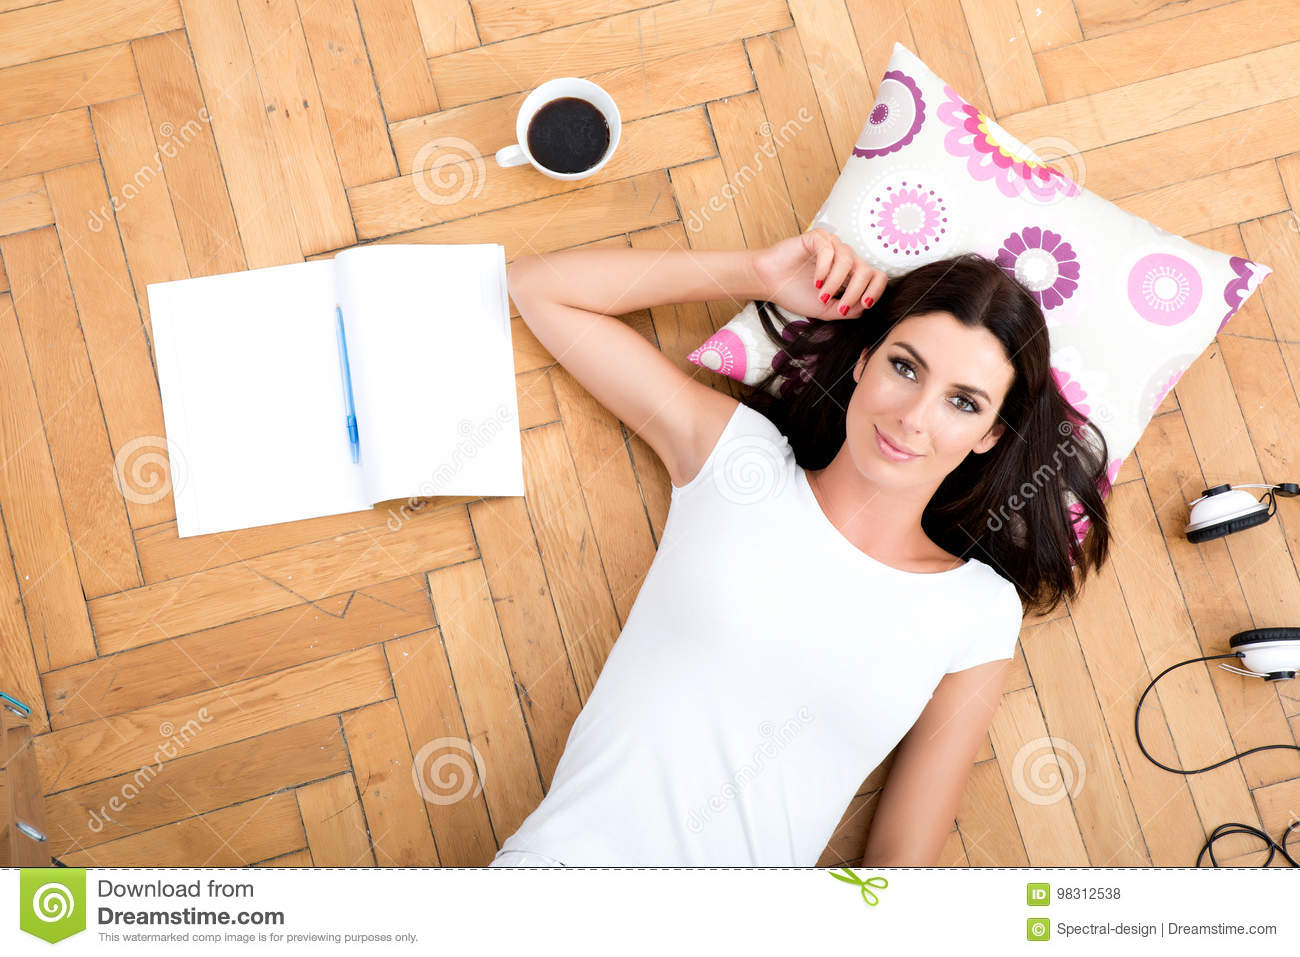 A beautiful young woman laying on the floor, with electronic gad